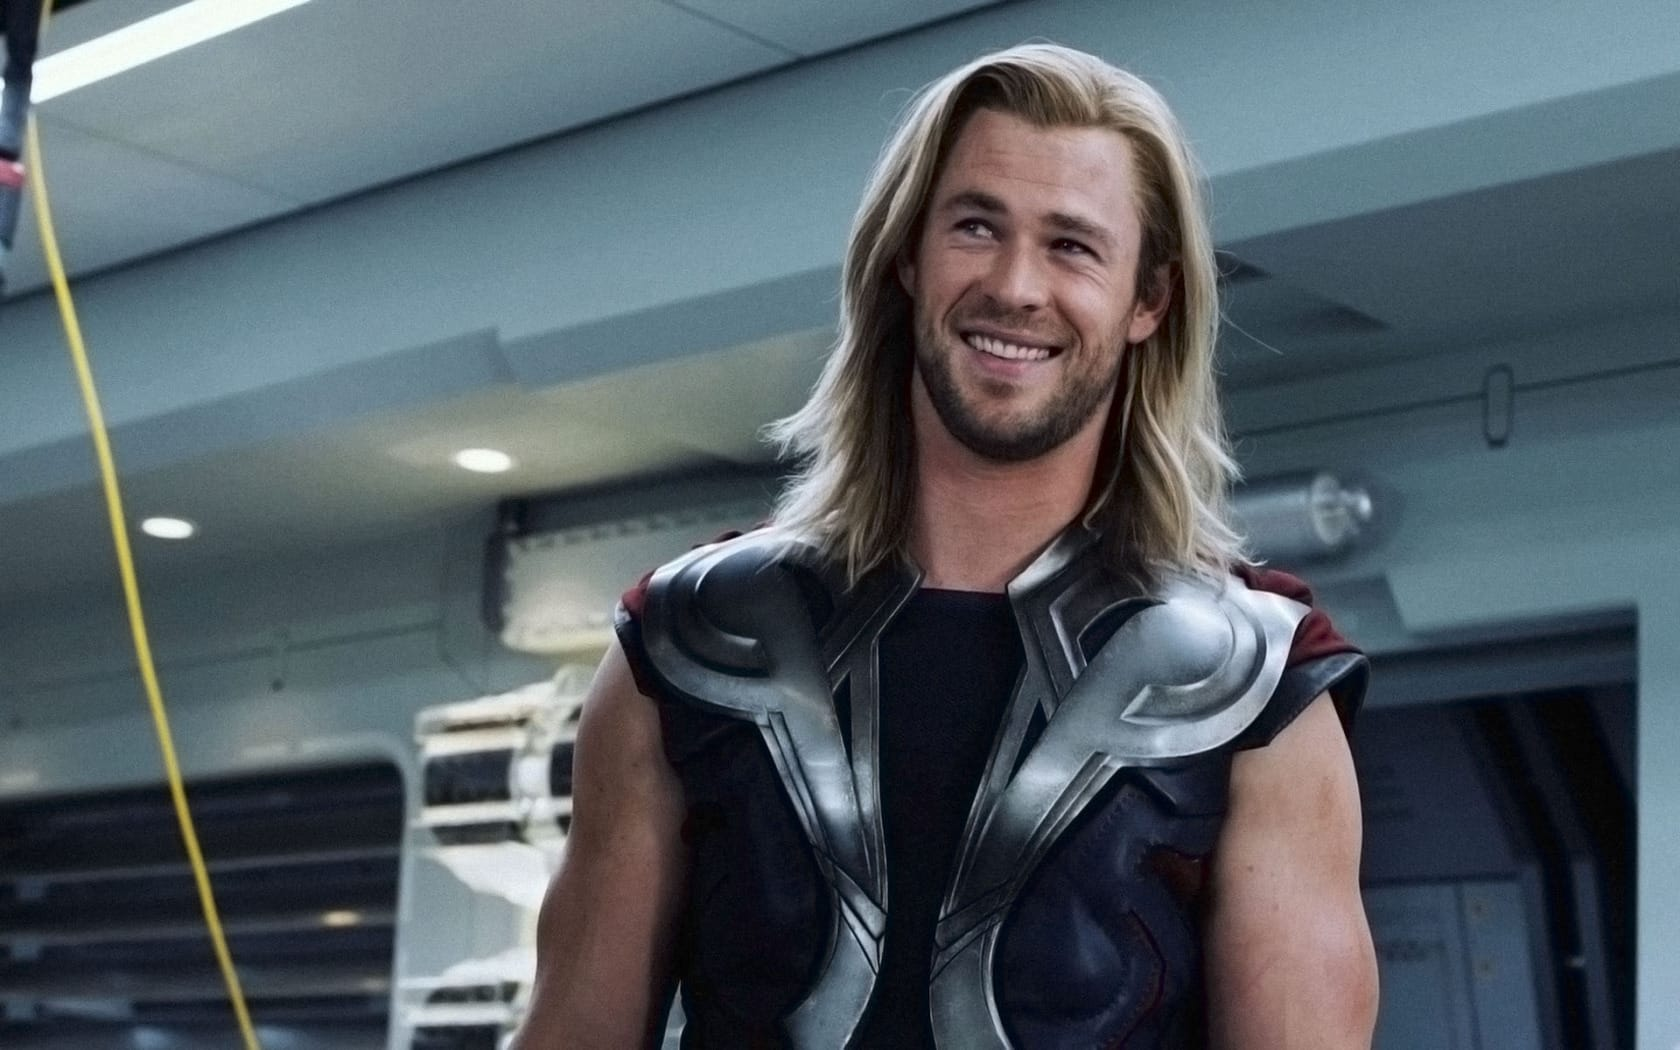 Thor: The Dark World aims to rake in $95 million in 3 days at domestic box-office